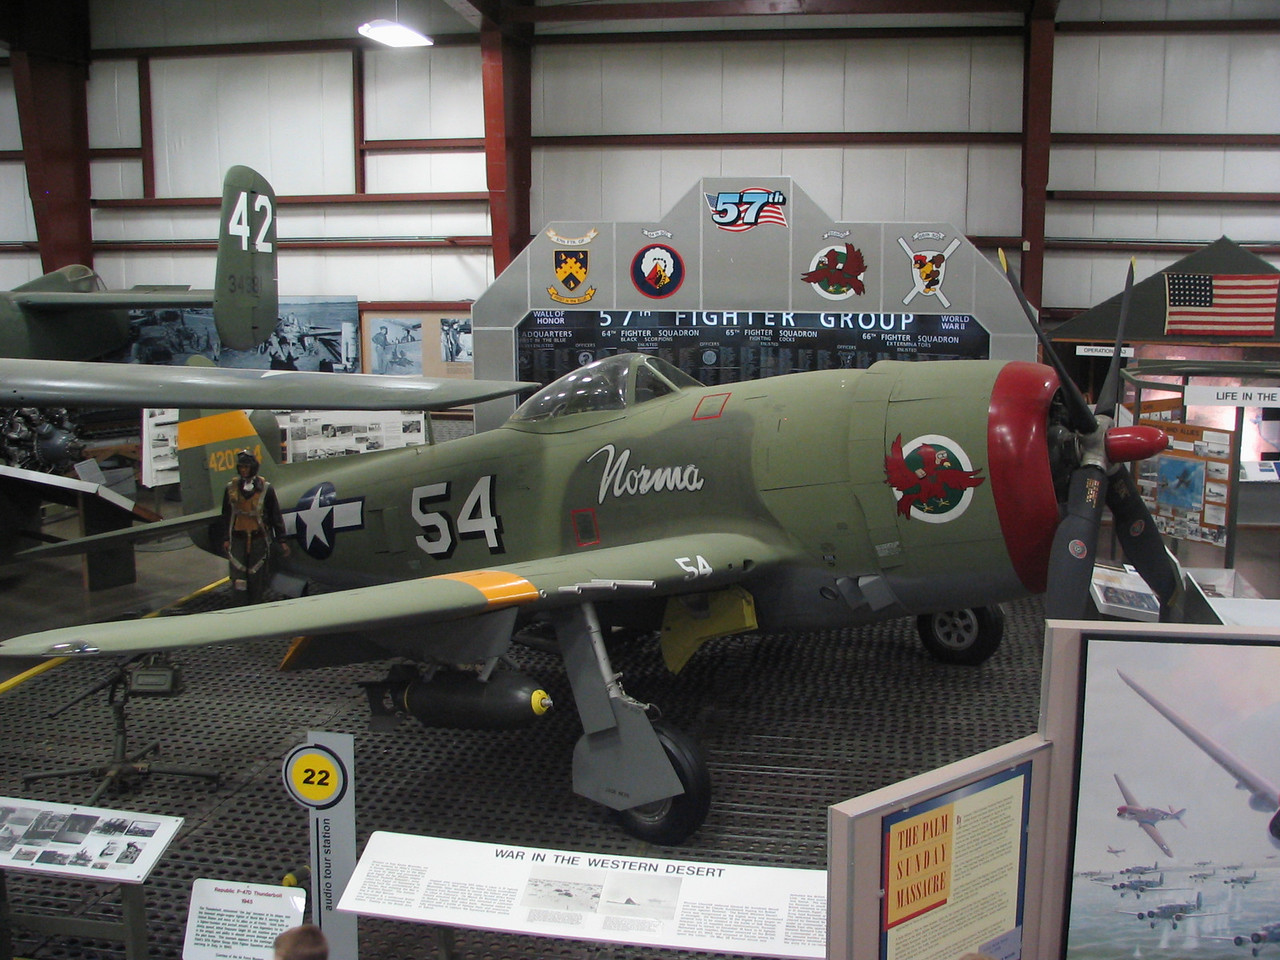 Republic P-47D Thunderbolt 'Norma'. The Thunderbolt was renowned for its ruggedness. It was the heaviest single-engine fighter of WW II and could take a beating from enemy fighters and still return back to base. This particular plane is painted in the markings of the 57th Fighter Group, 65th Fighter Squadron, based at Bradley Field.